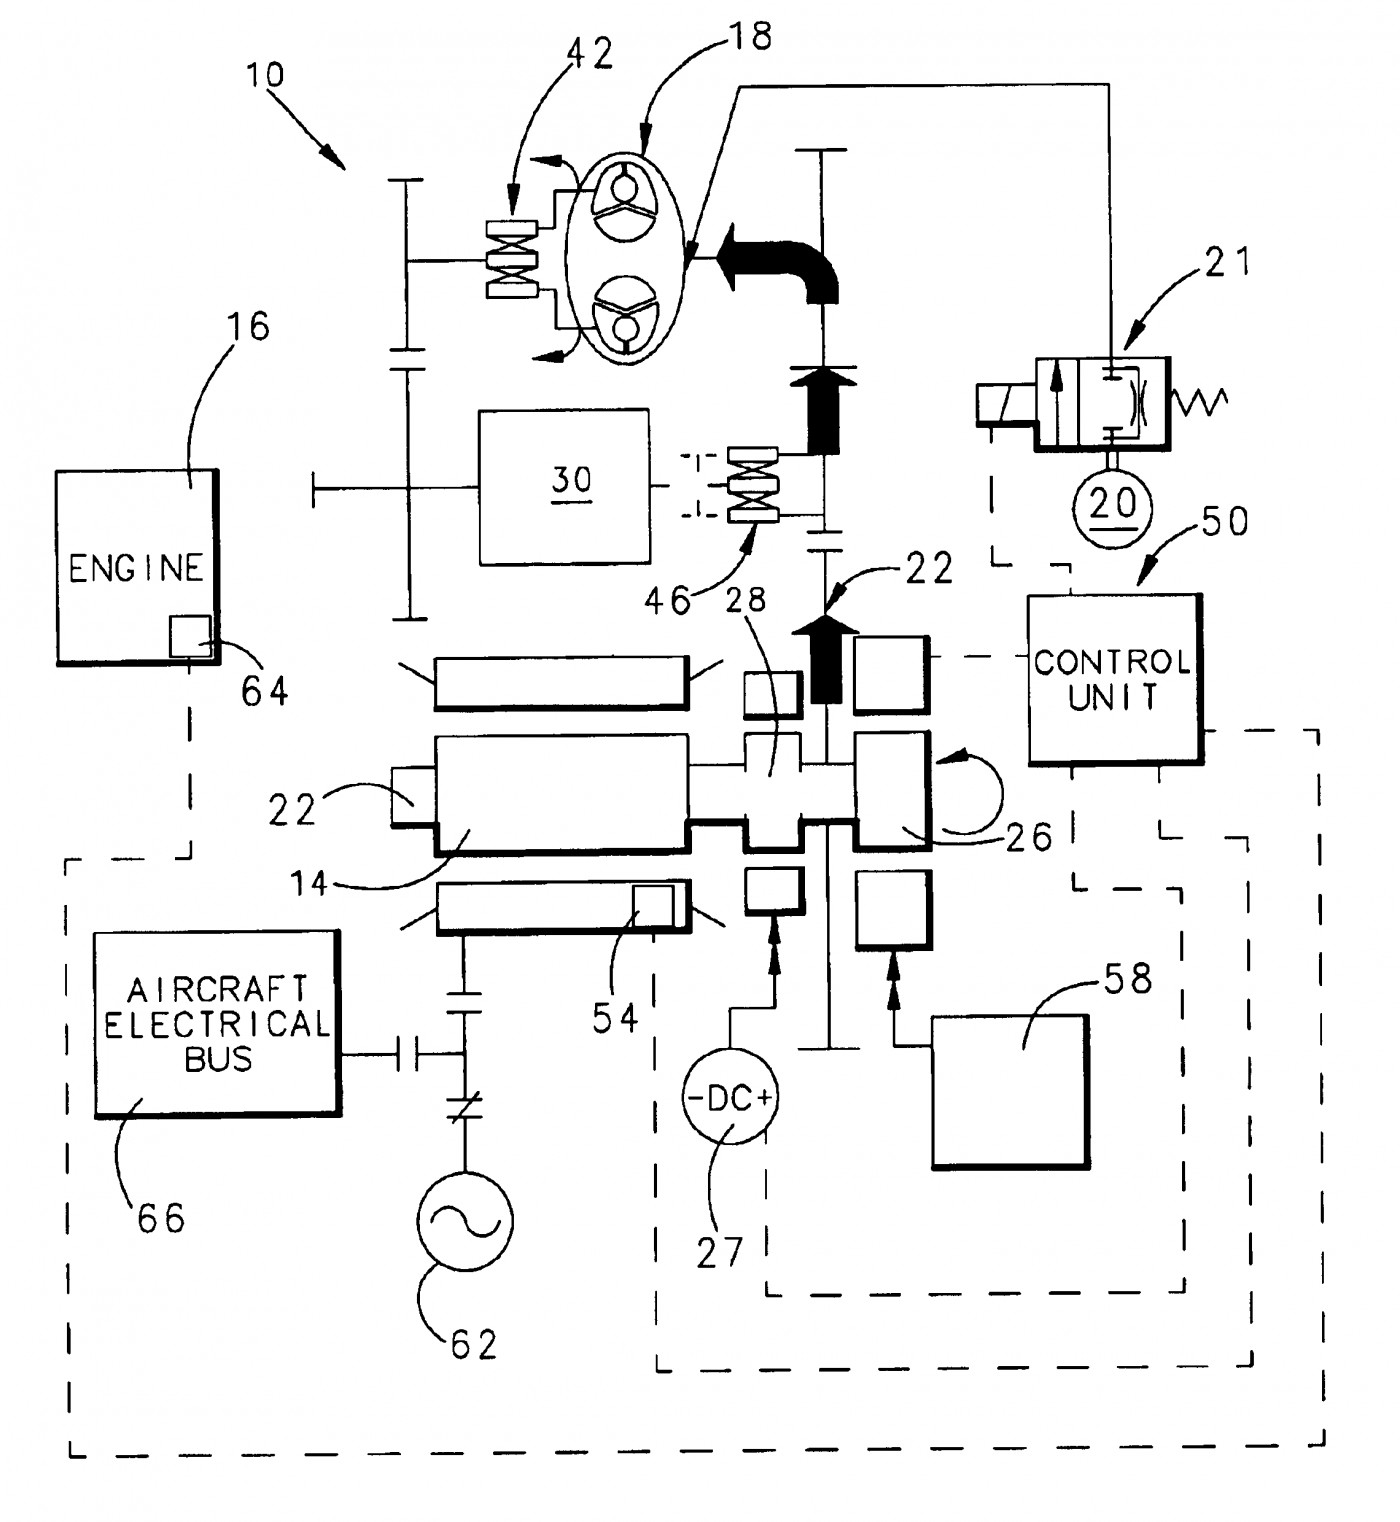 hight resolution of marathon electric motors wiring diagram free download wiringmarathon electric motors wiring diagram free download 1 wiring